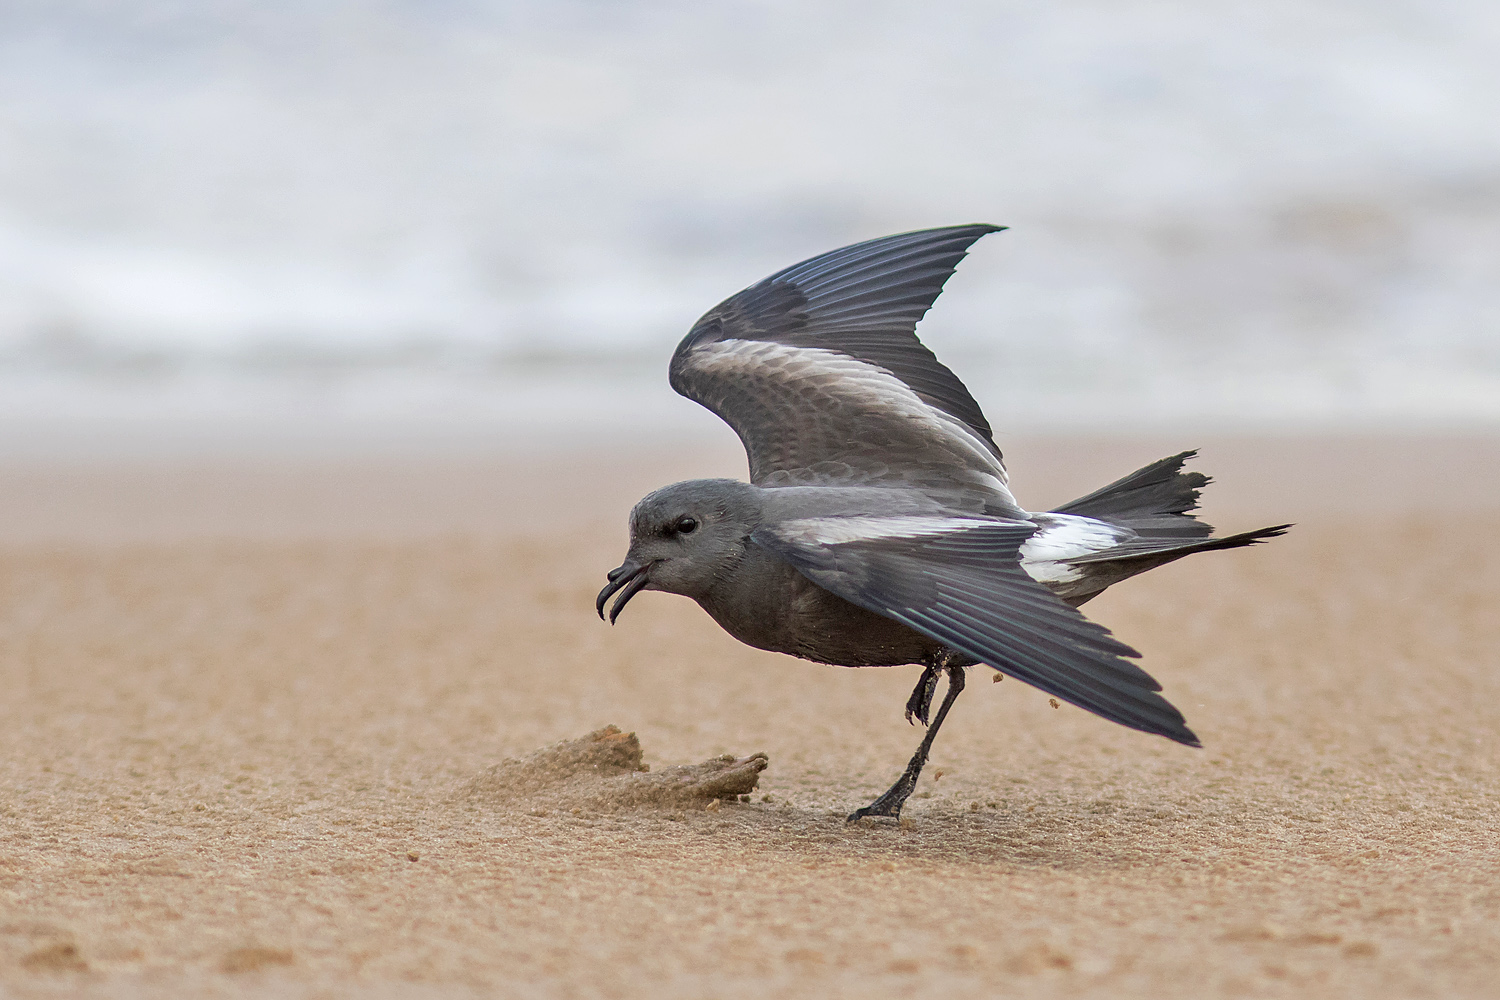 Leach's Storm Petrel, New Brighton, Cheshire, 13 September 2017 (Photo: Jack Morris)